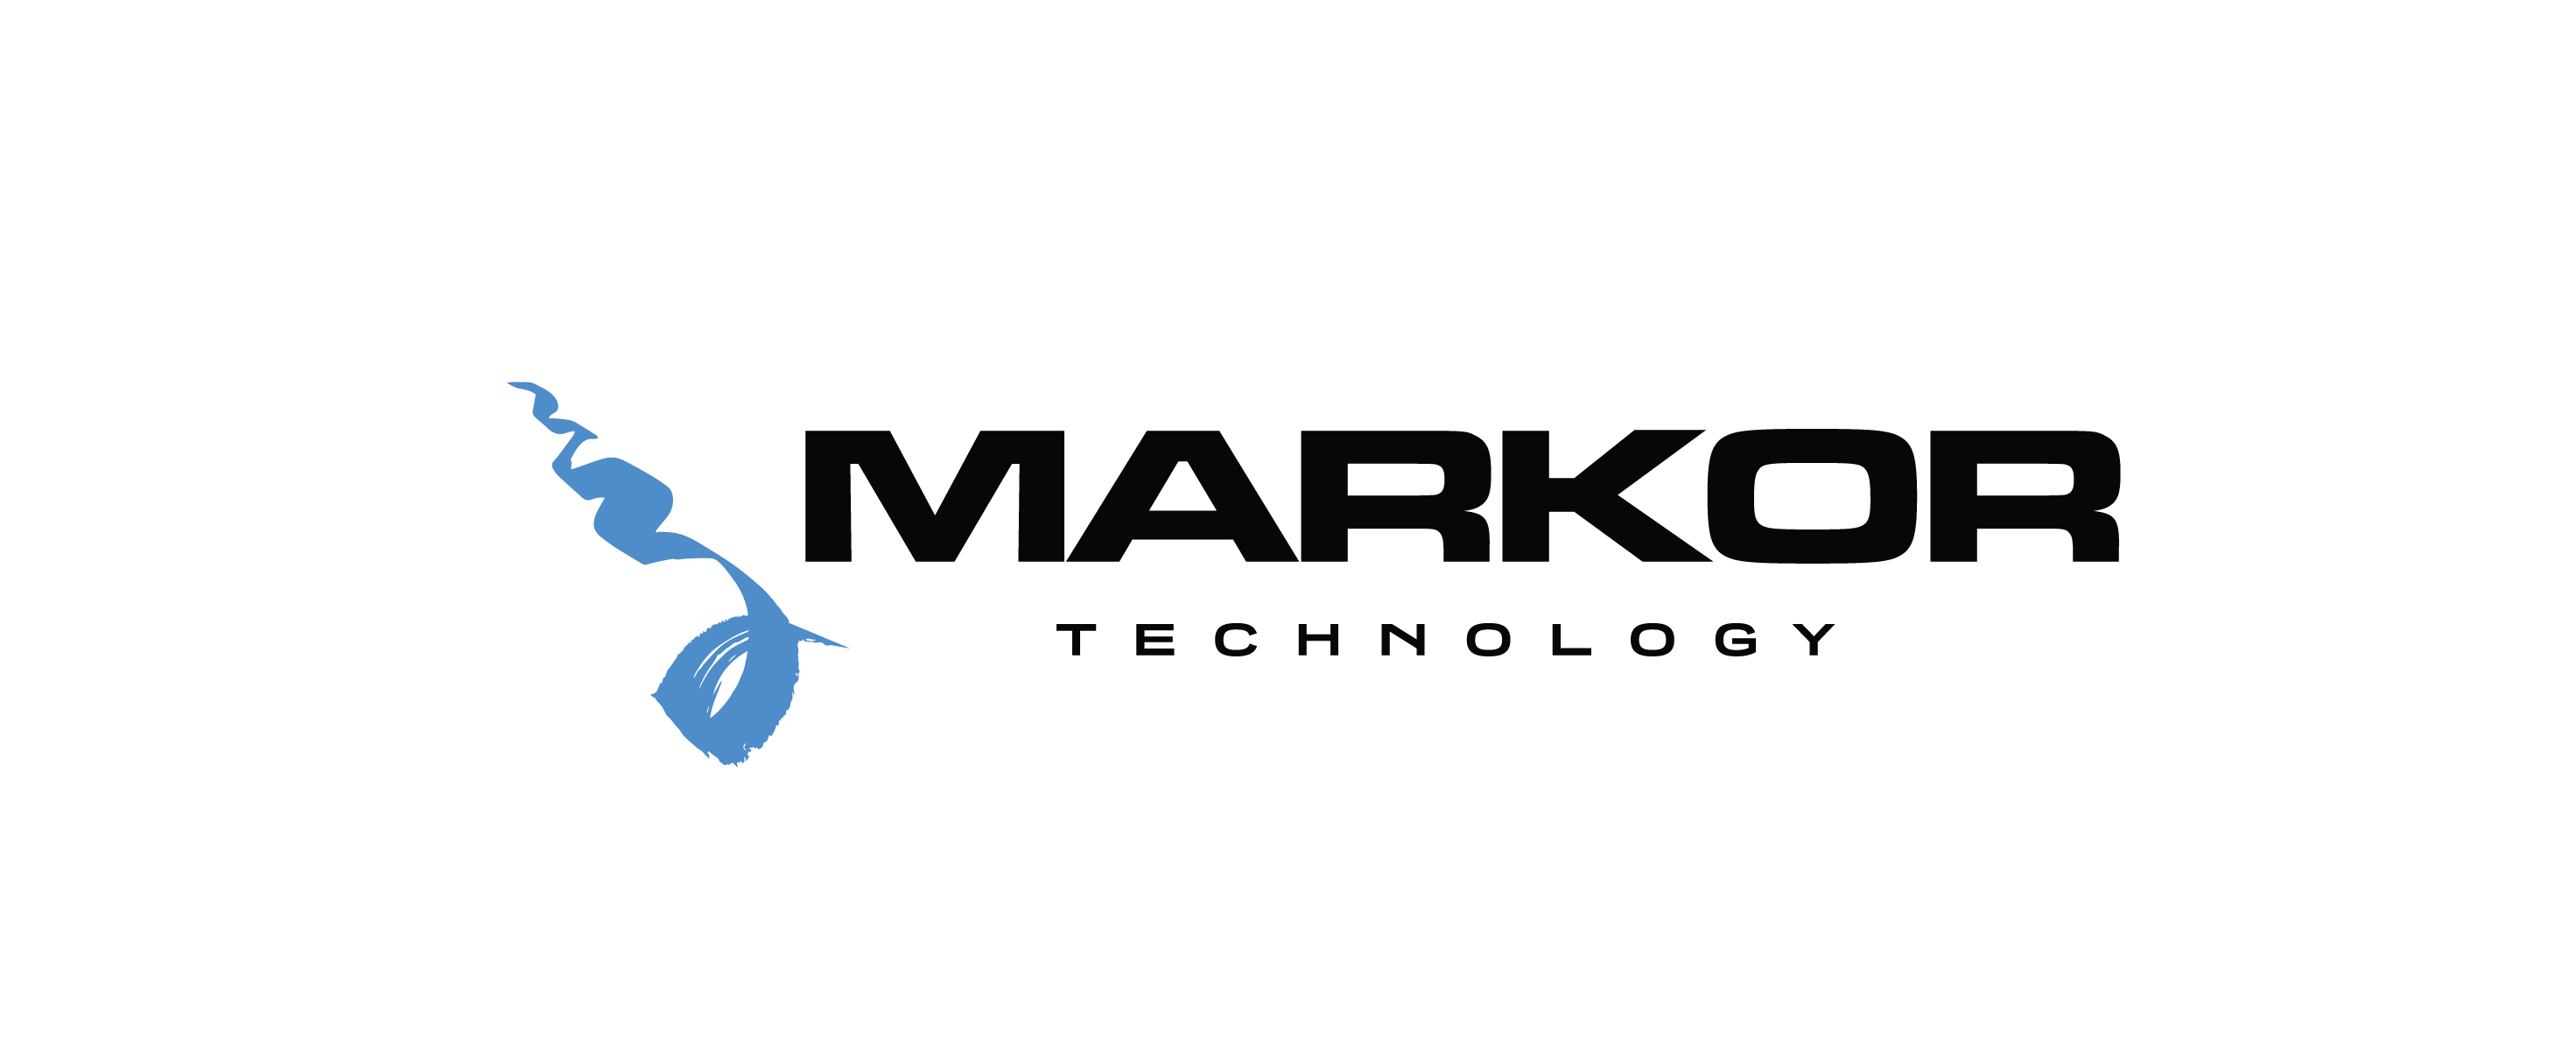 Markor Technology games